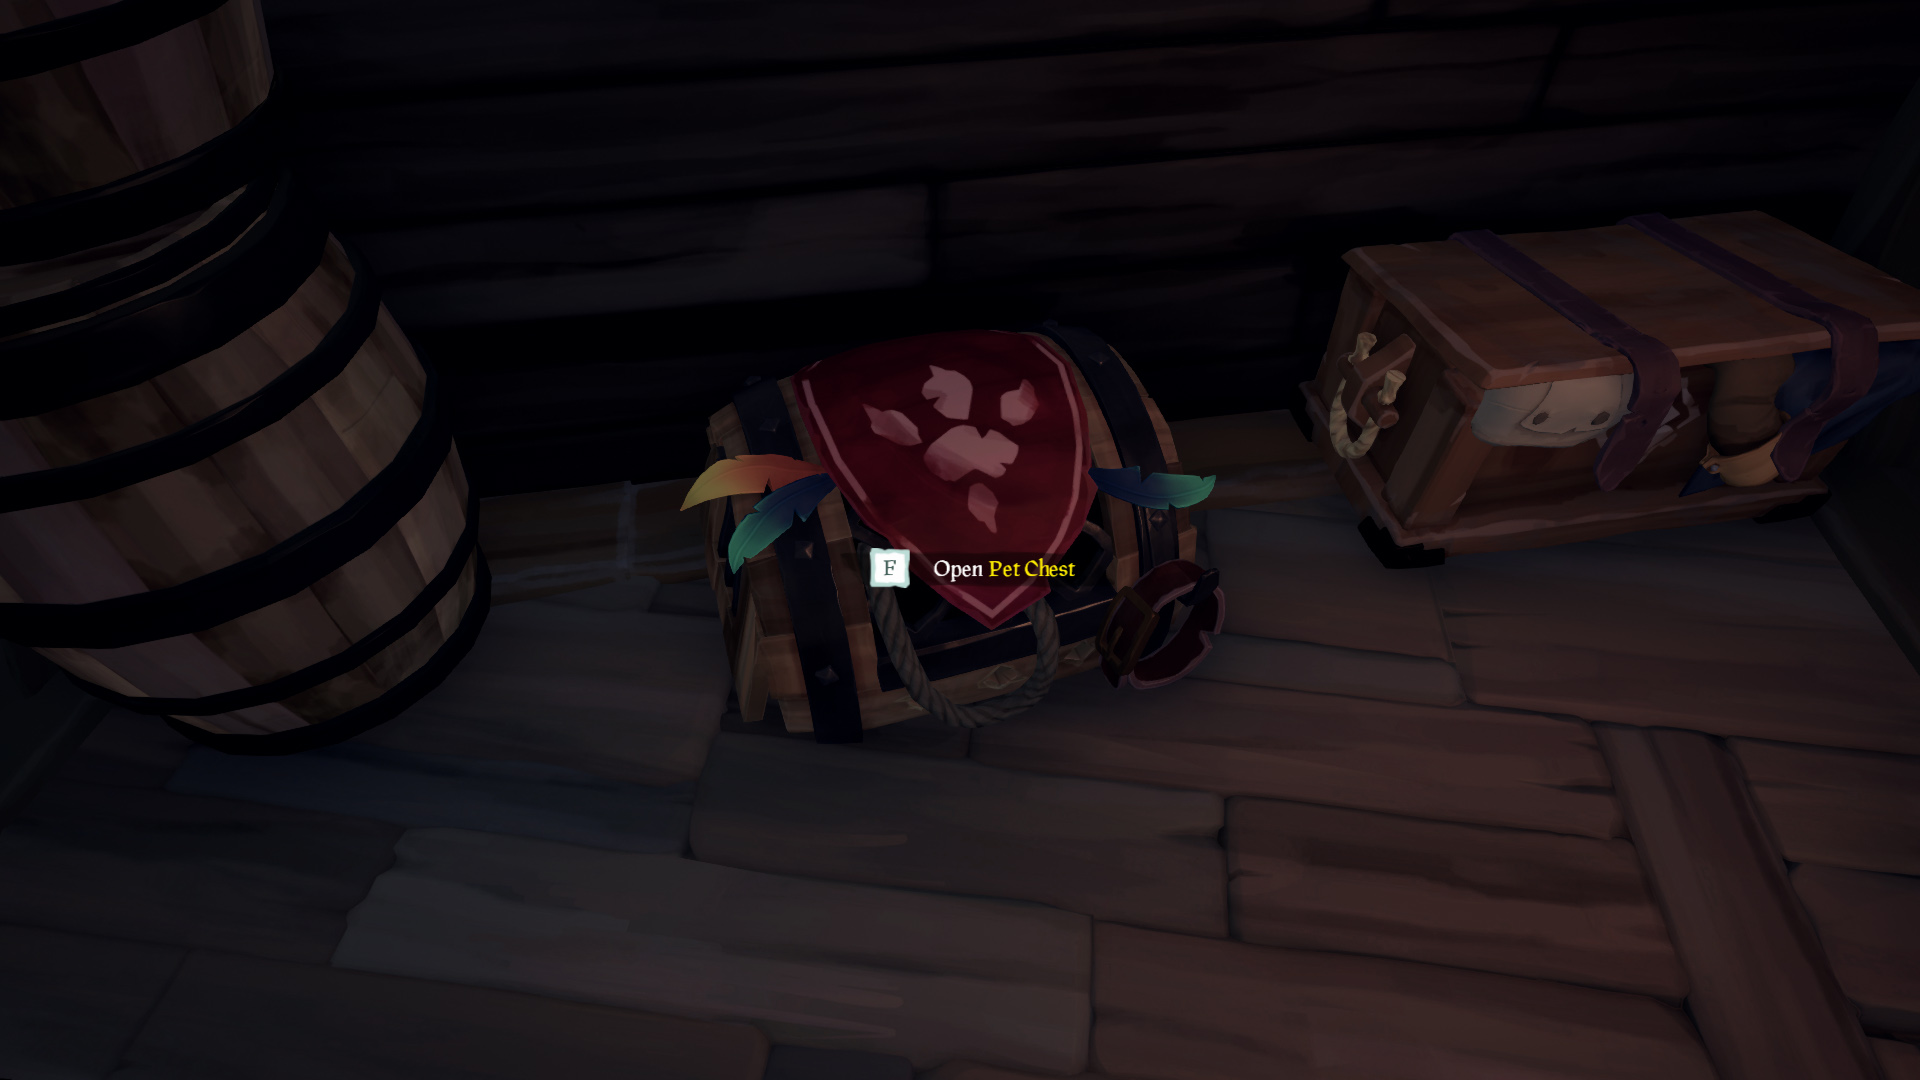 Sea of Thieves equip a pet at a Pet Chest